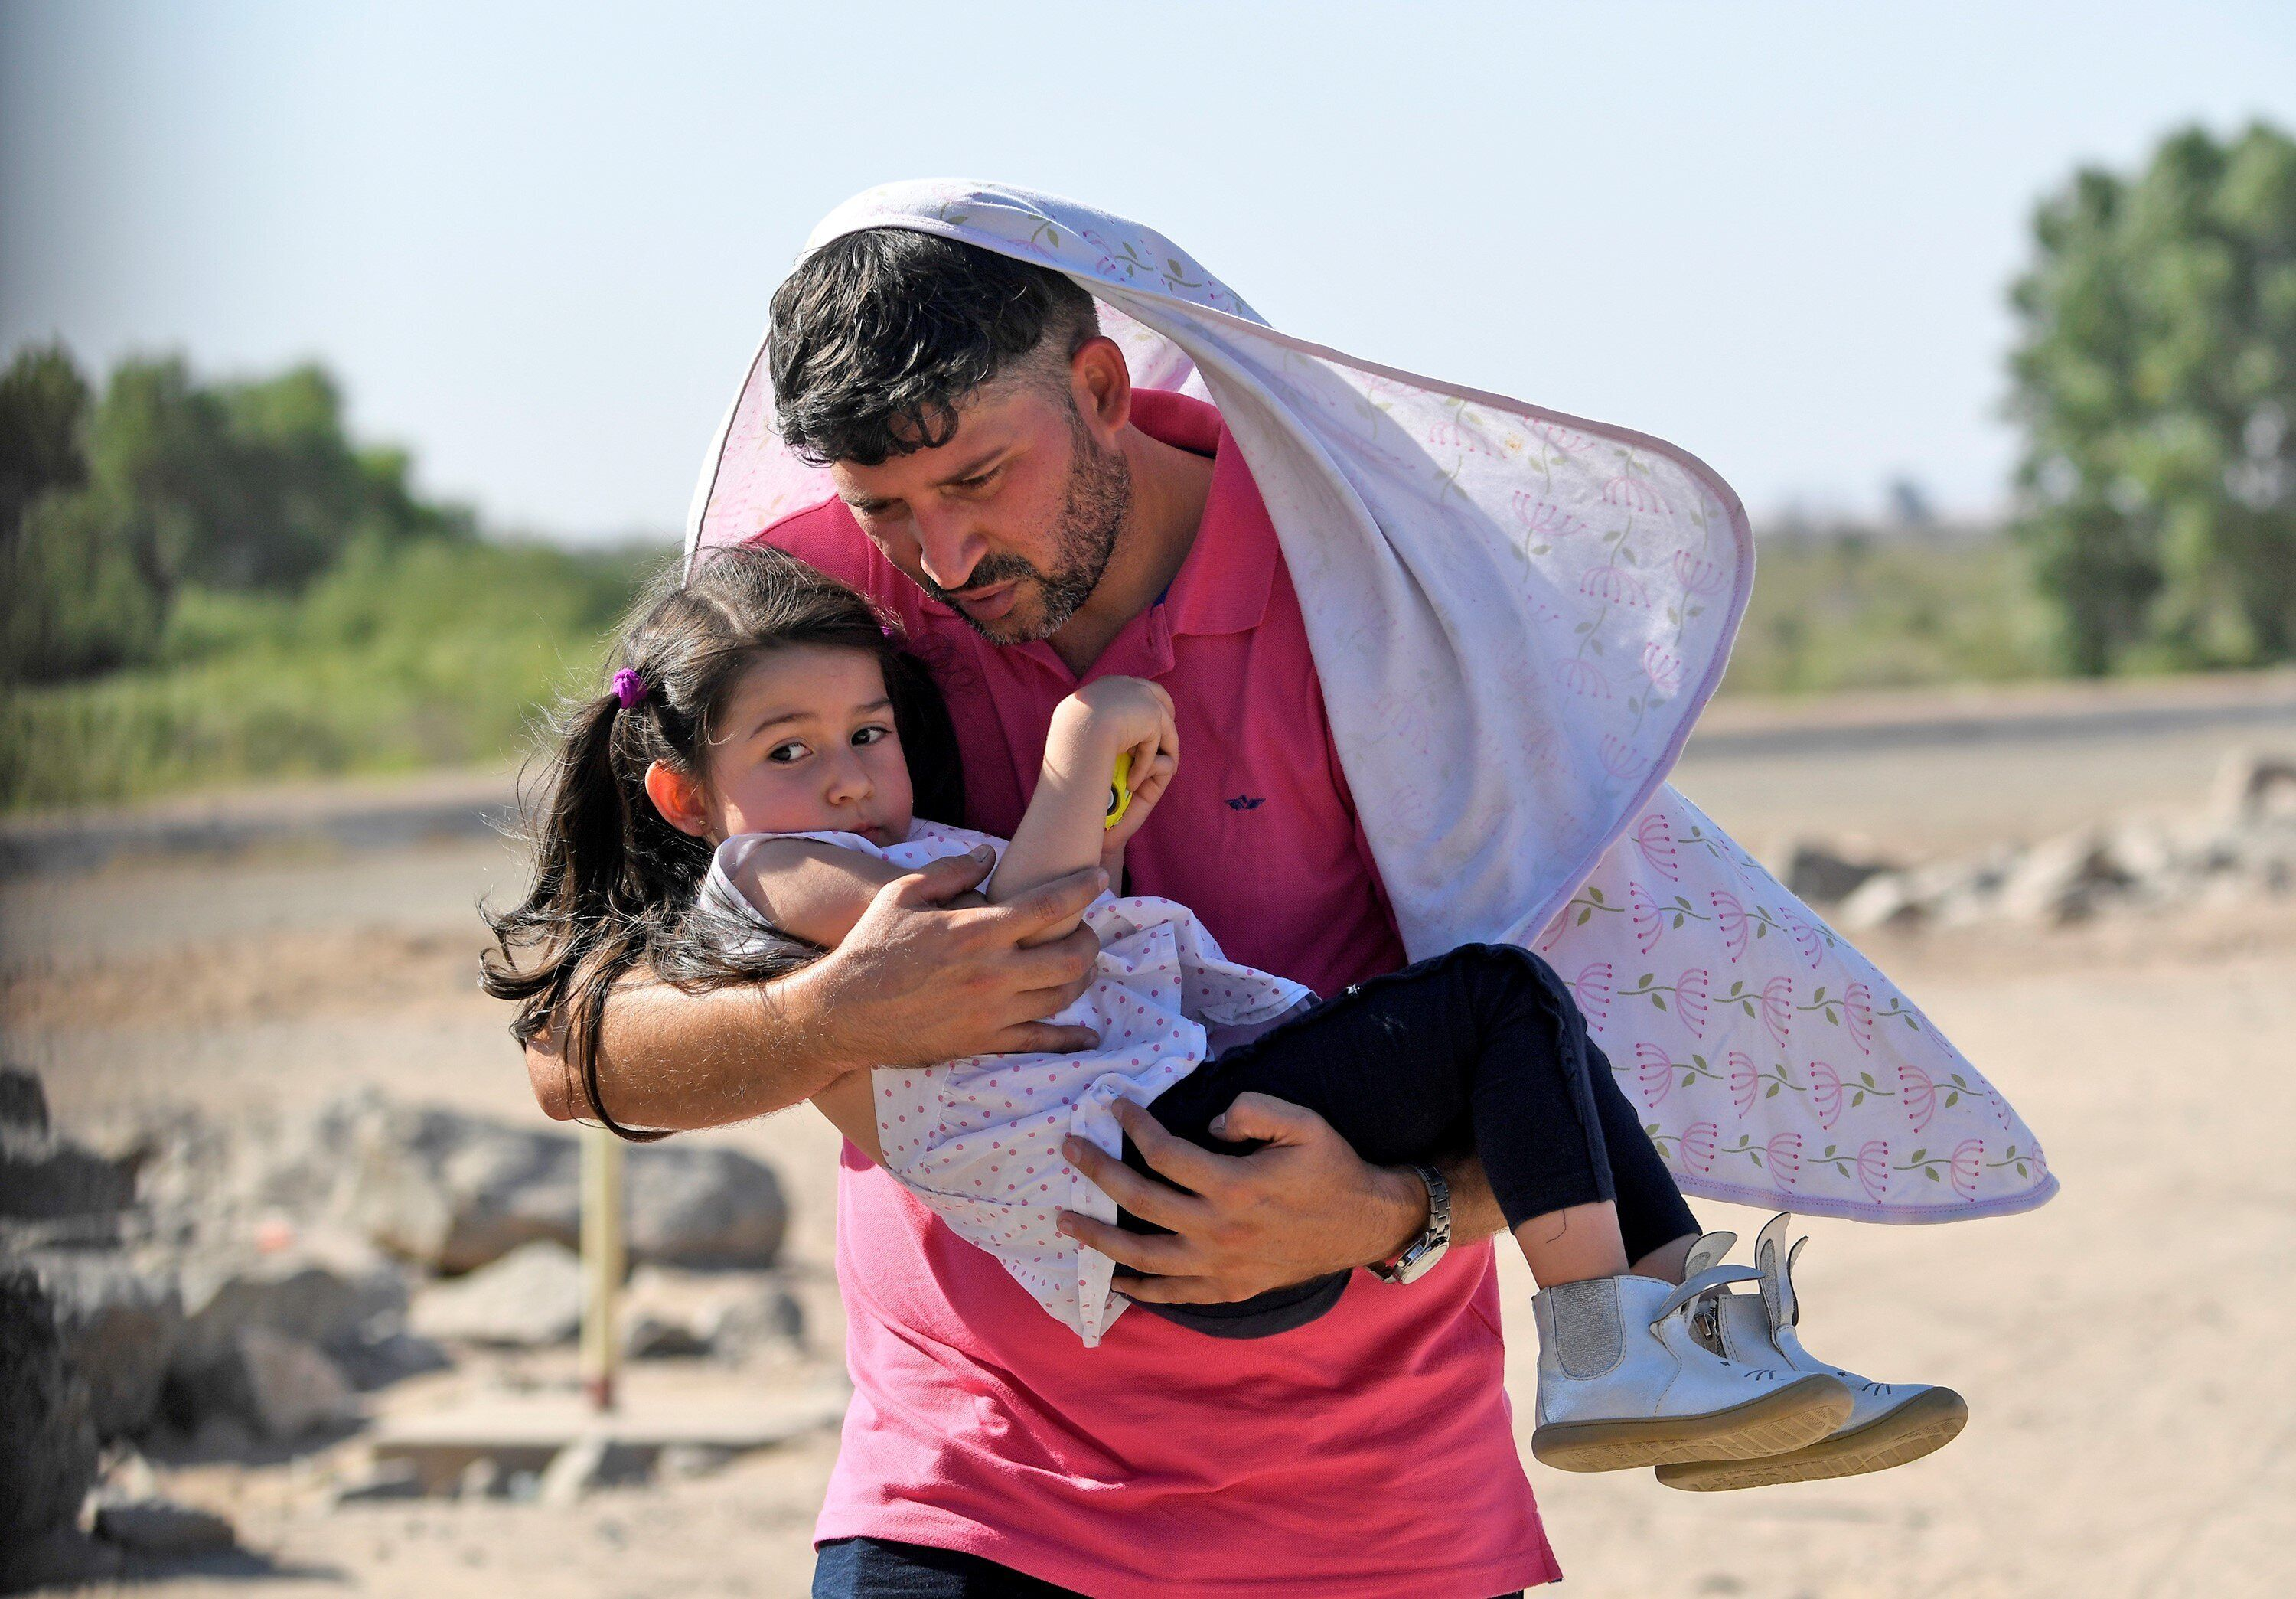 Luis Sarcos from Venezuela holds his daughter Luna as they attempt to cross into the U.S. from Mexico on June 4 in San Luis,